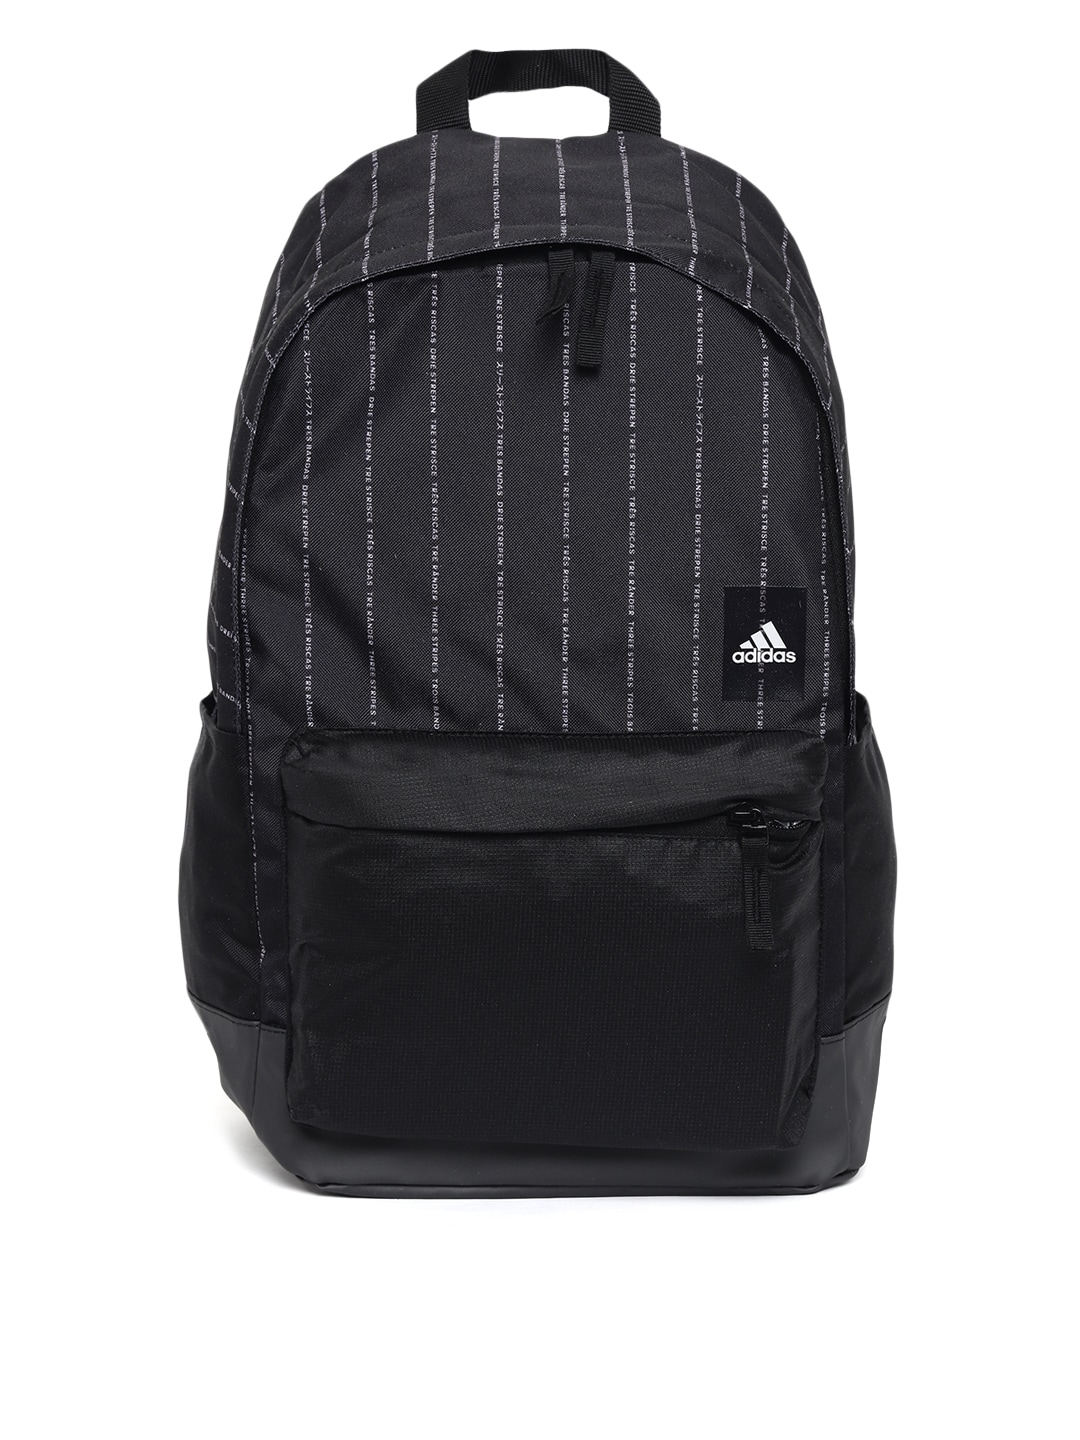 Mens Bags   Backpacks - Buy Bags   Backpacks for Men Online f7ba4d0369dcb